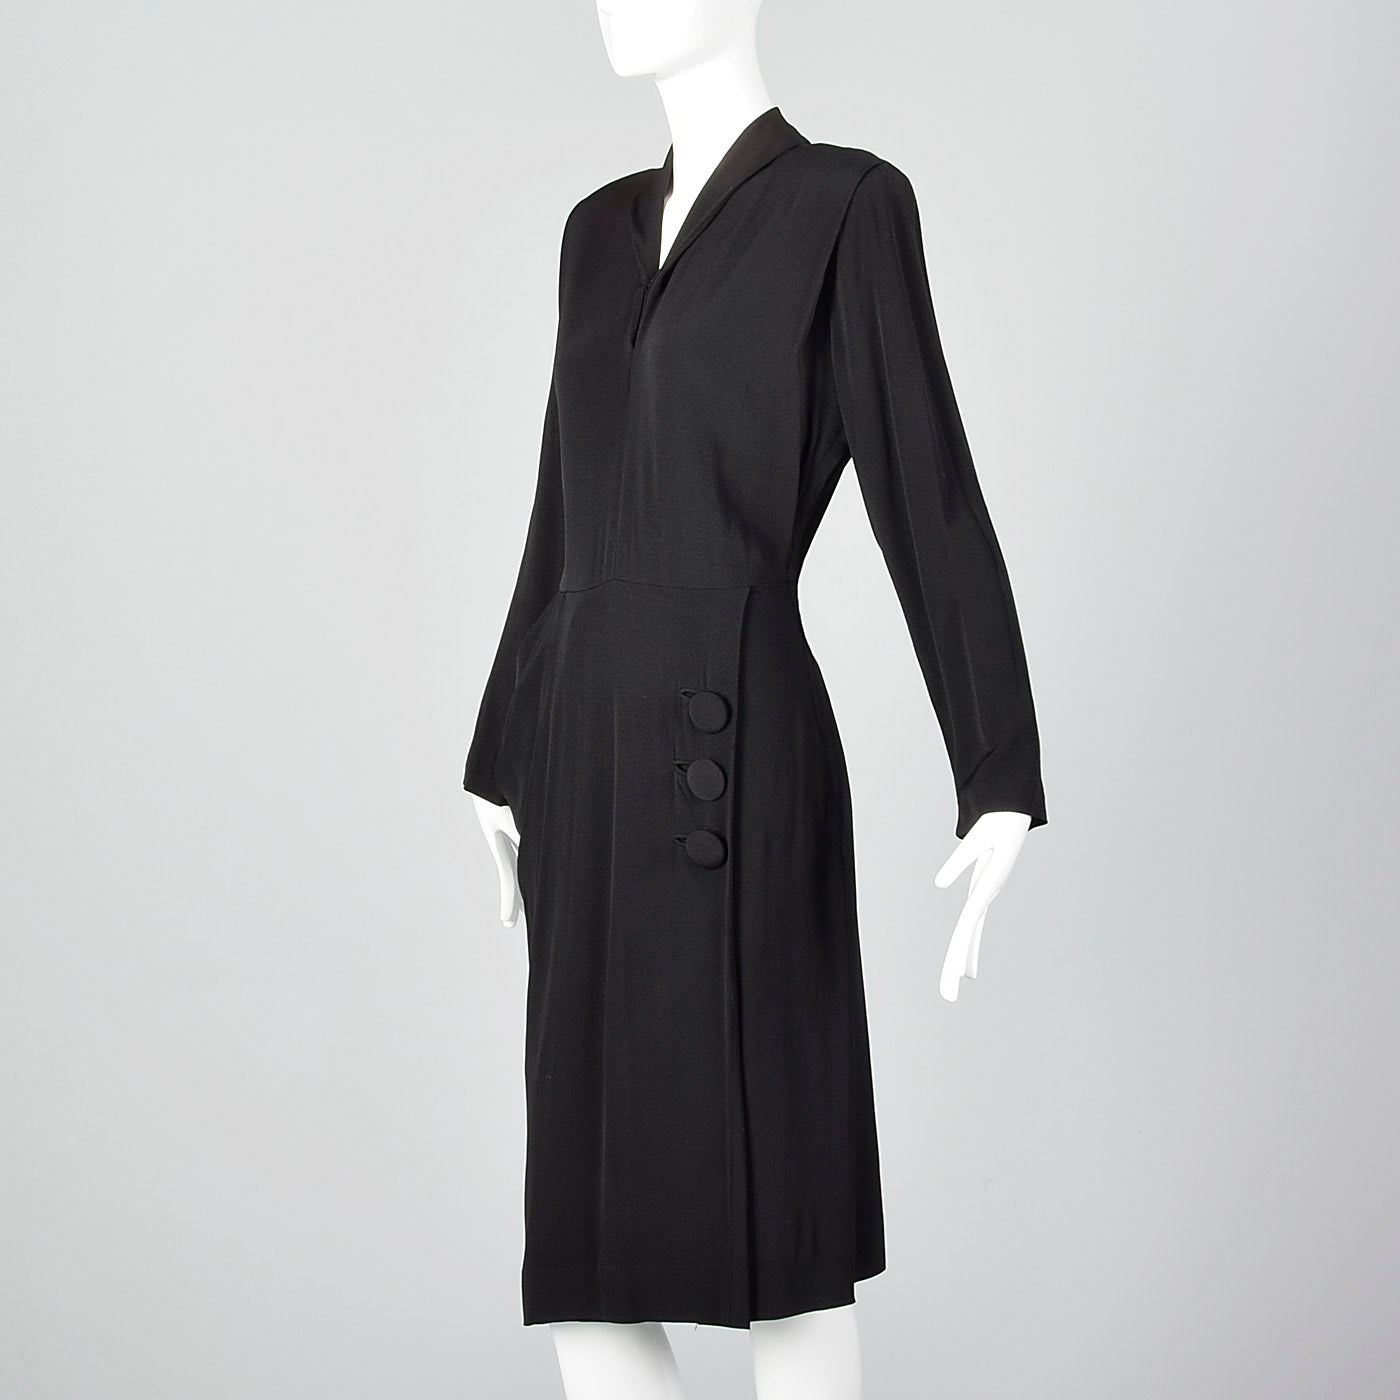 1940s Black Rayon Dress with Draped Hip Pocket